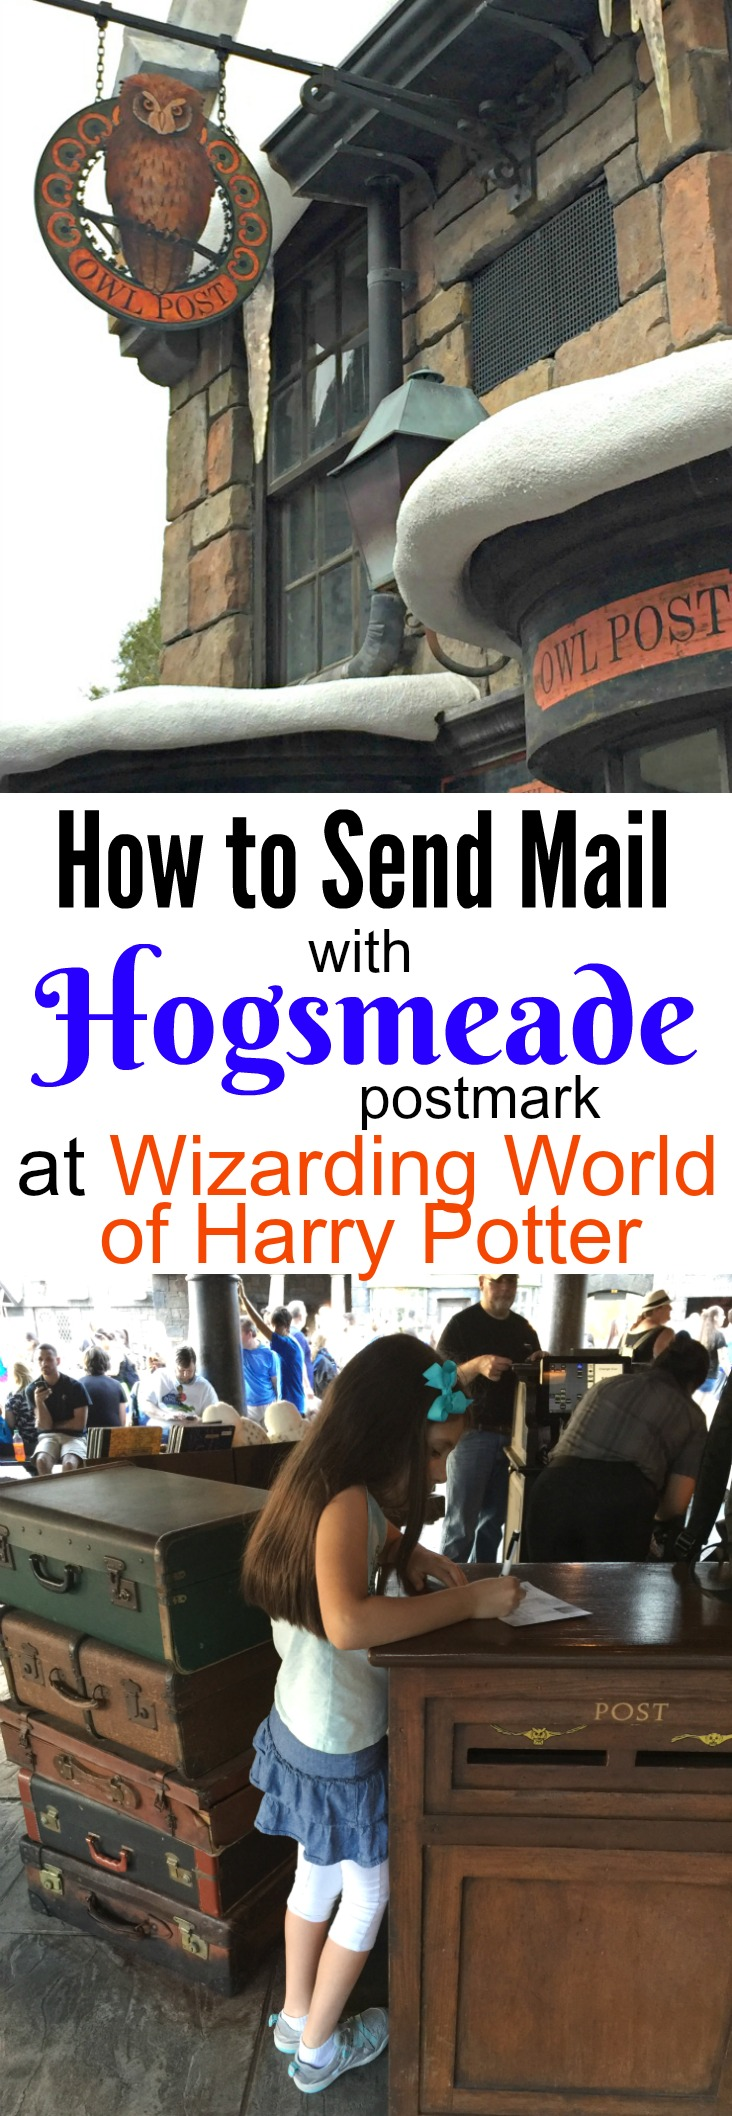 How to send mail with Hogsmeade postmark at Wizarding World of Harry Potter